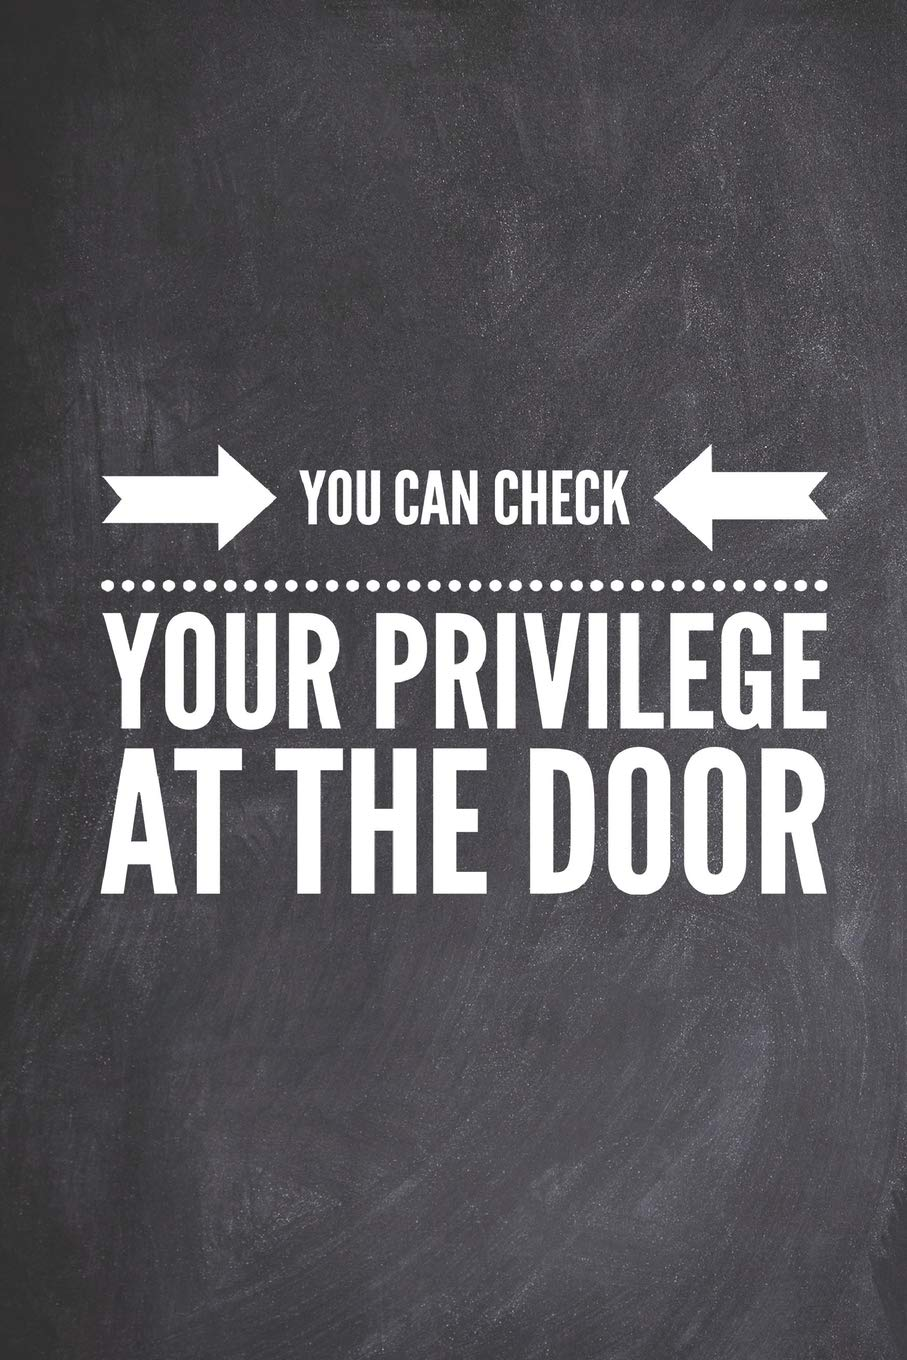 You Can Check Your Privilege At The Door - Funny Journal: Amazon ...